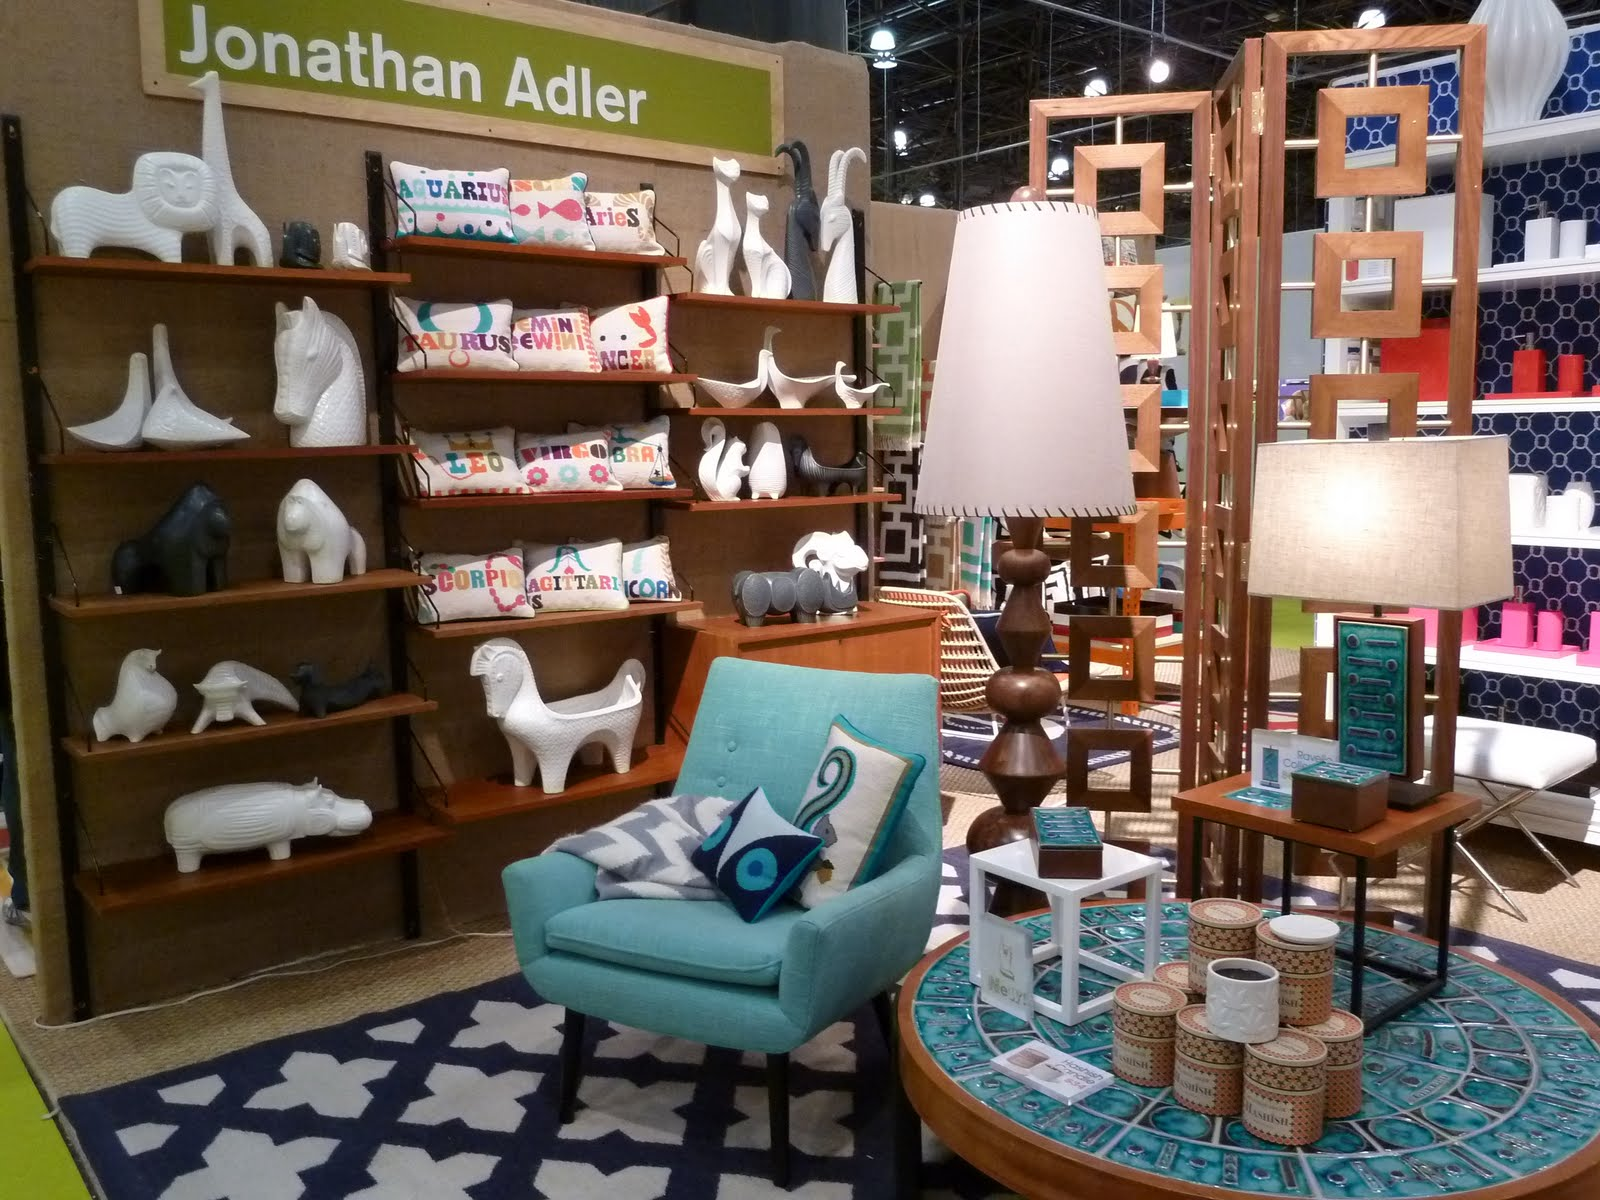 Jonathan Adler's Store Is a Treasure Trove of Unique Home Decor that's Less Expensive than ItLooks